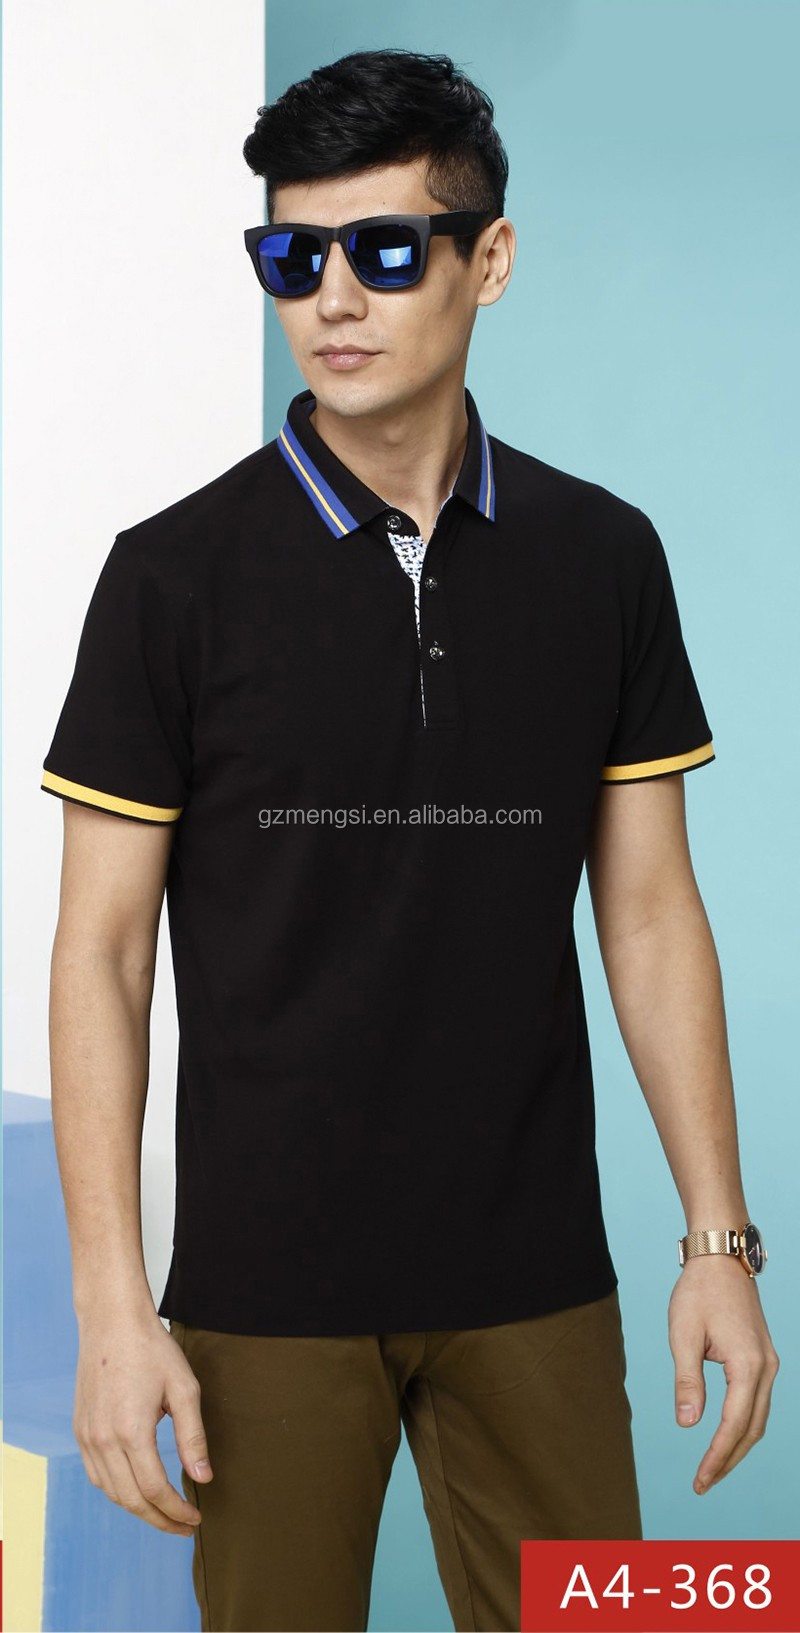 Wholesale polo T shirt short/long sleeve customized logo printed